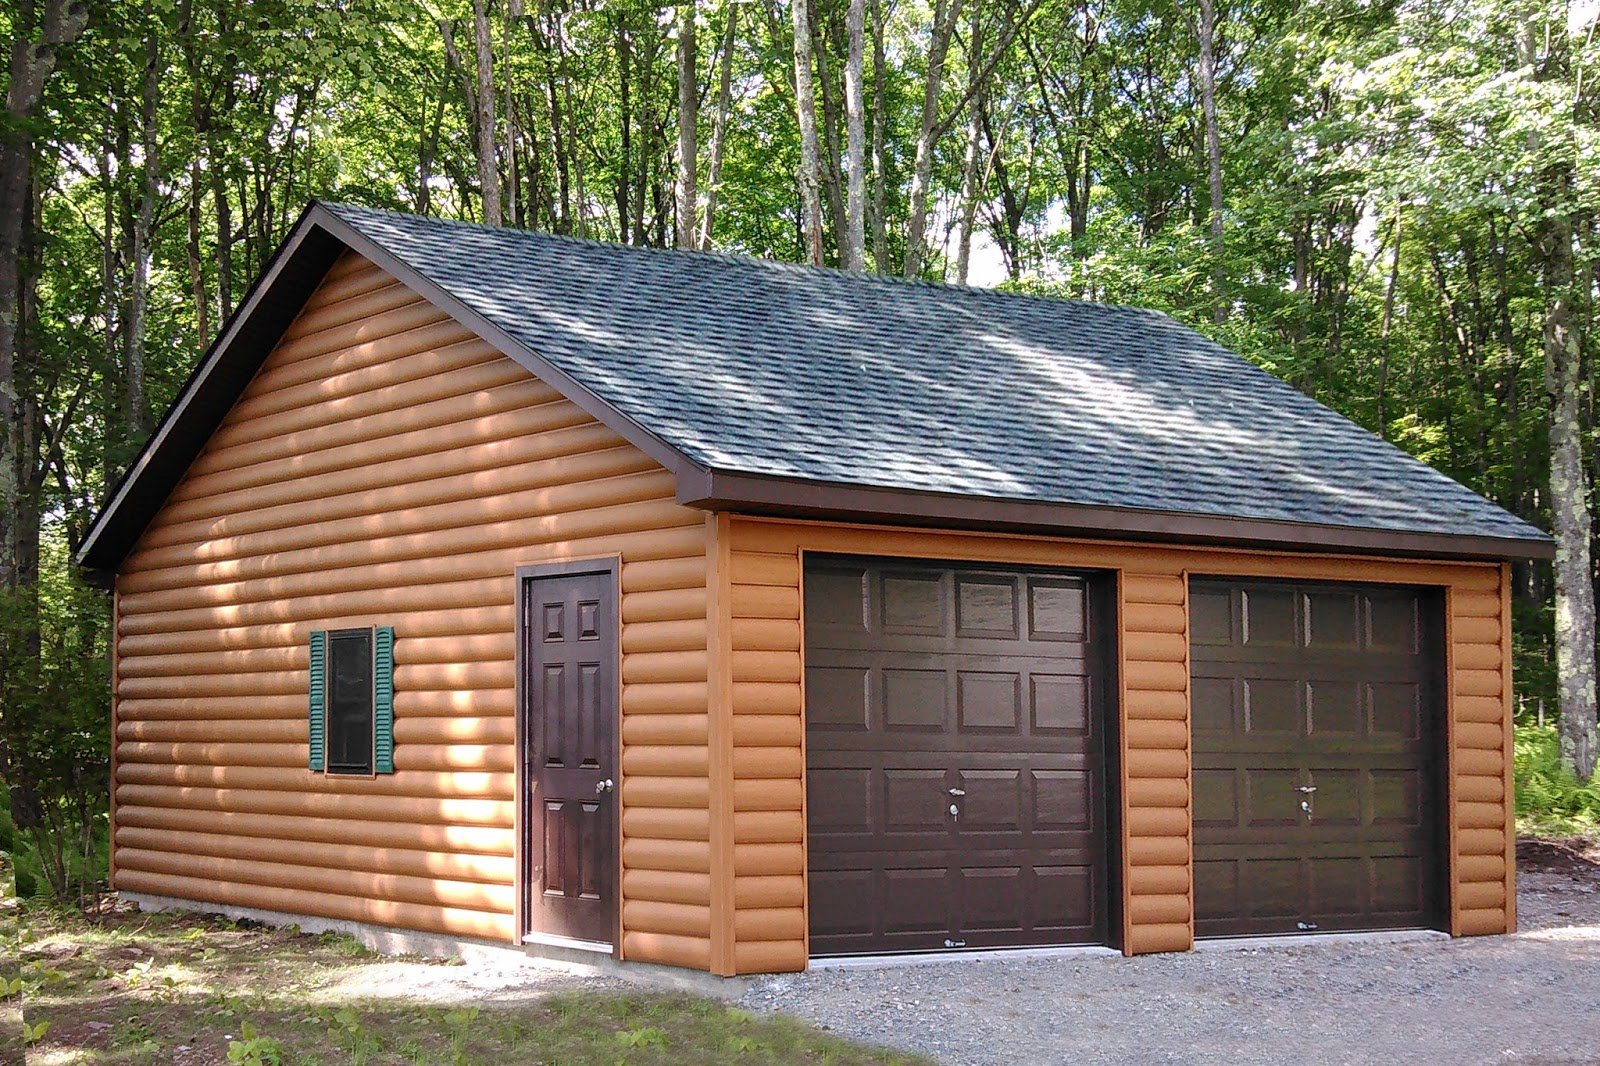 Prefab car garages for sale in pa nj ny ct de md va for Garage to apartment